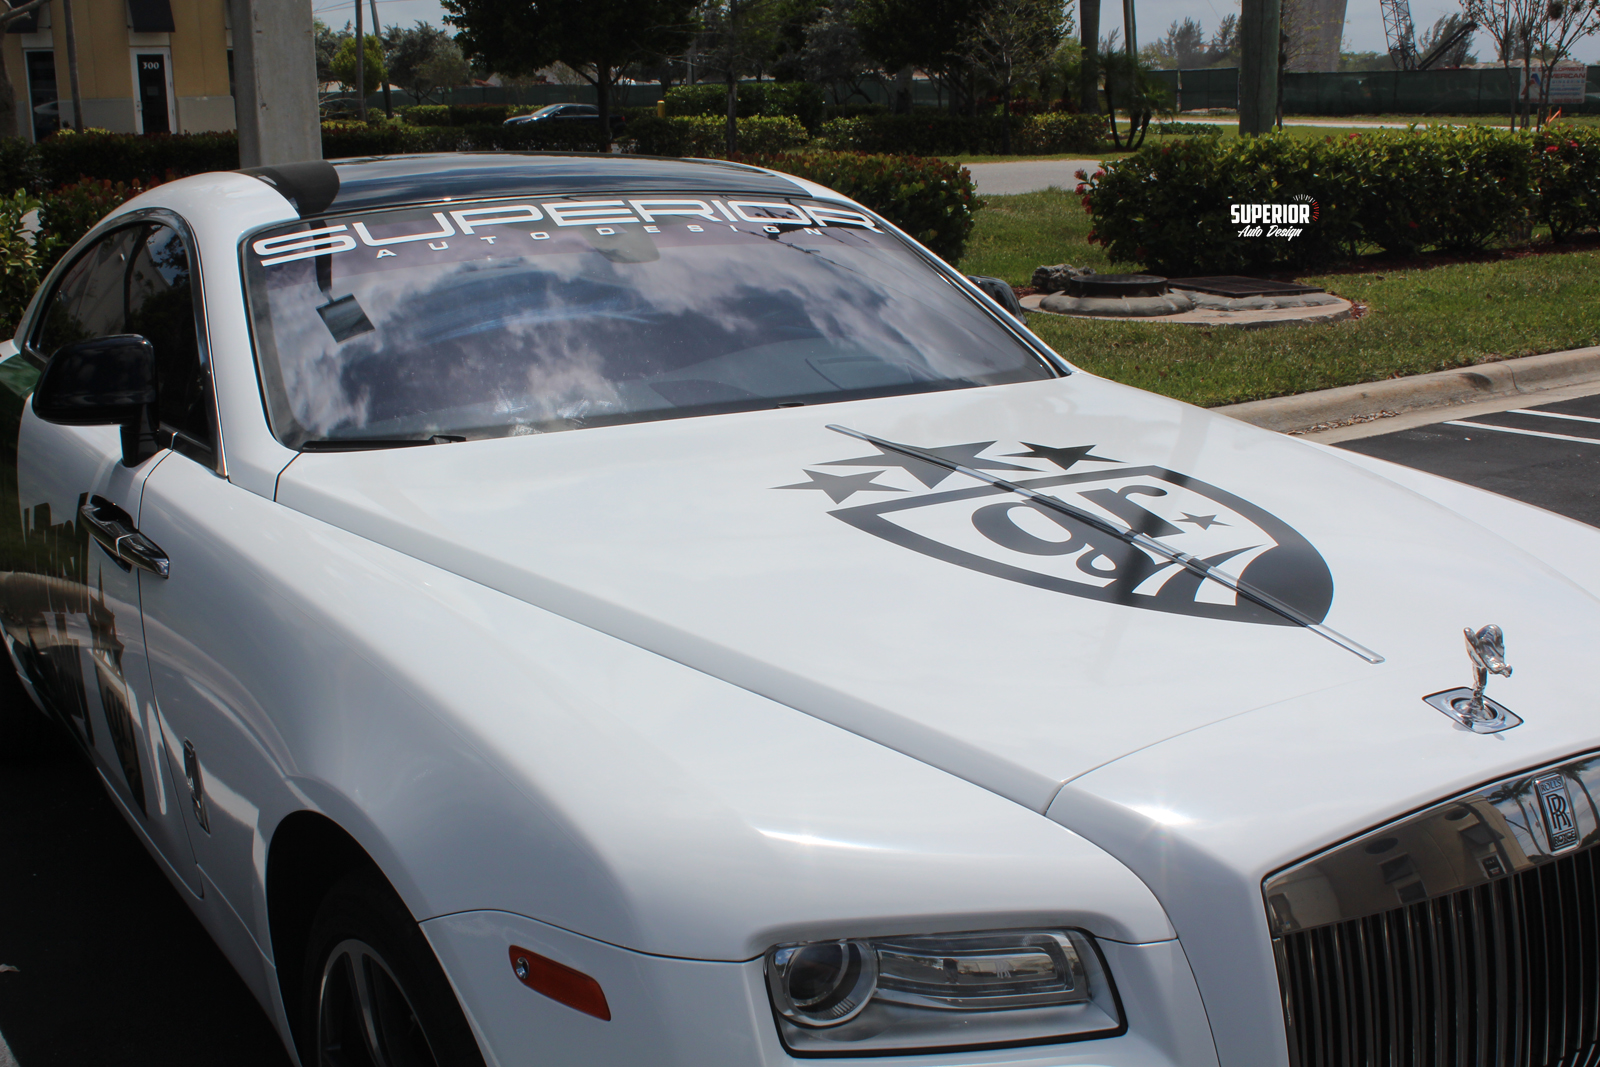 border patrolls rolls royce gold rush superior auto design 9